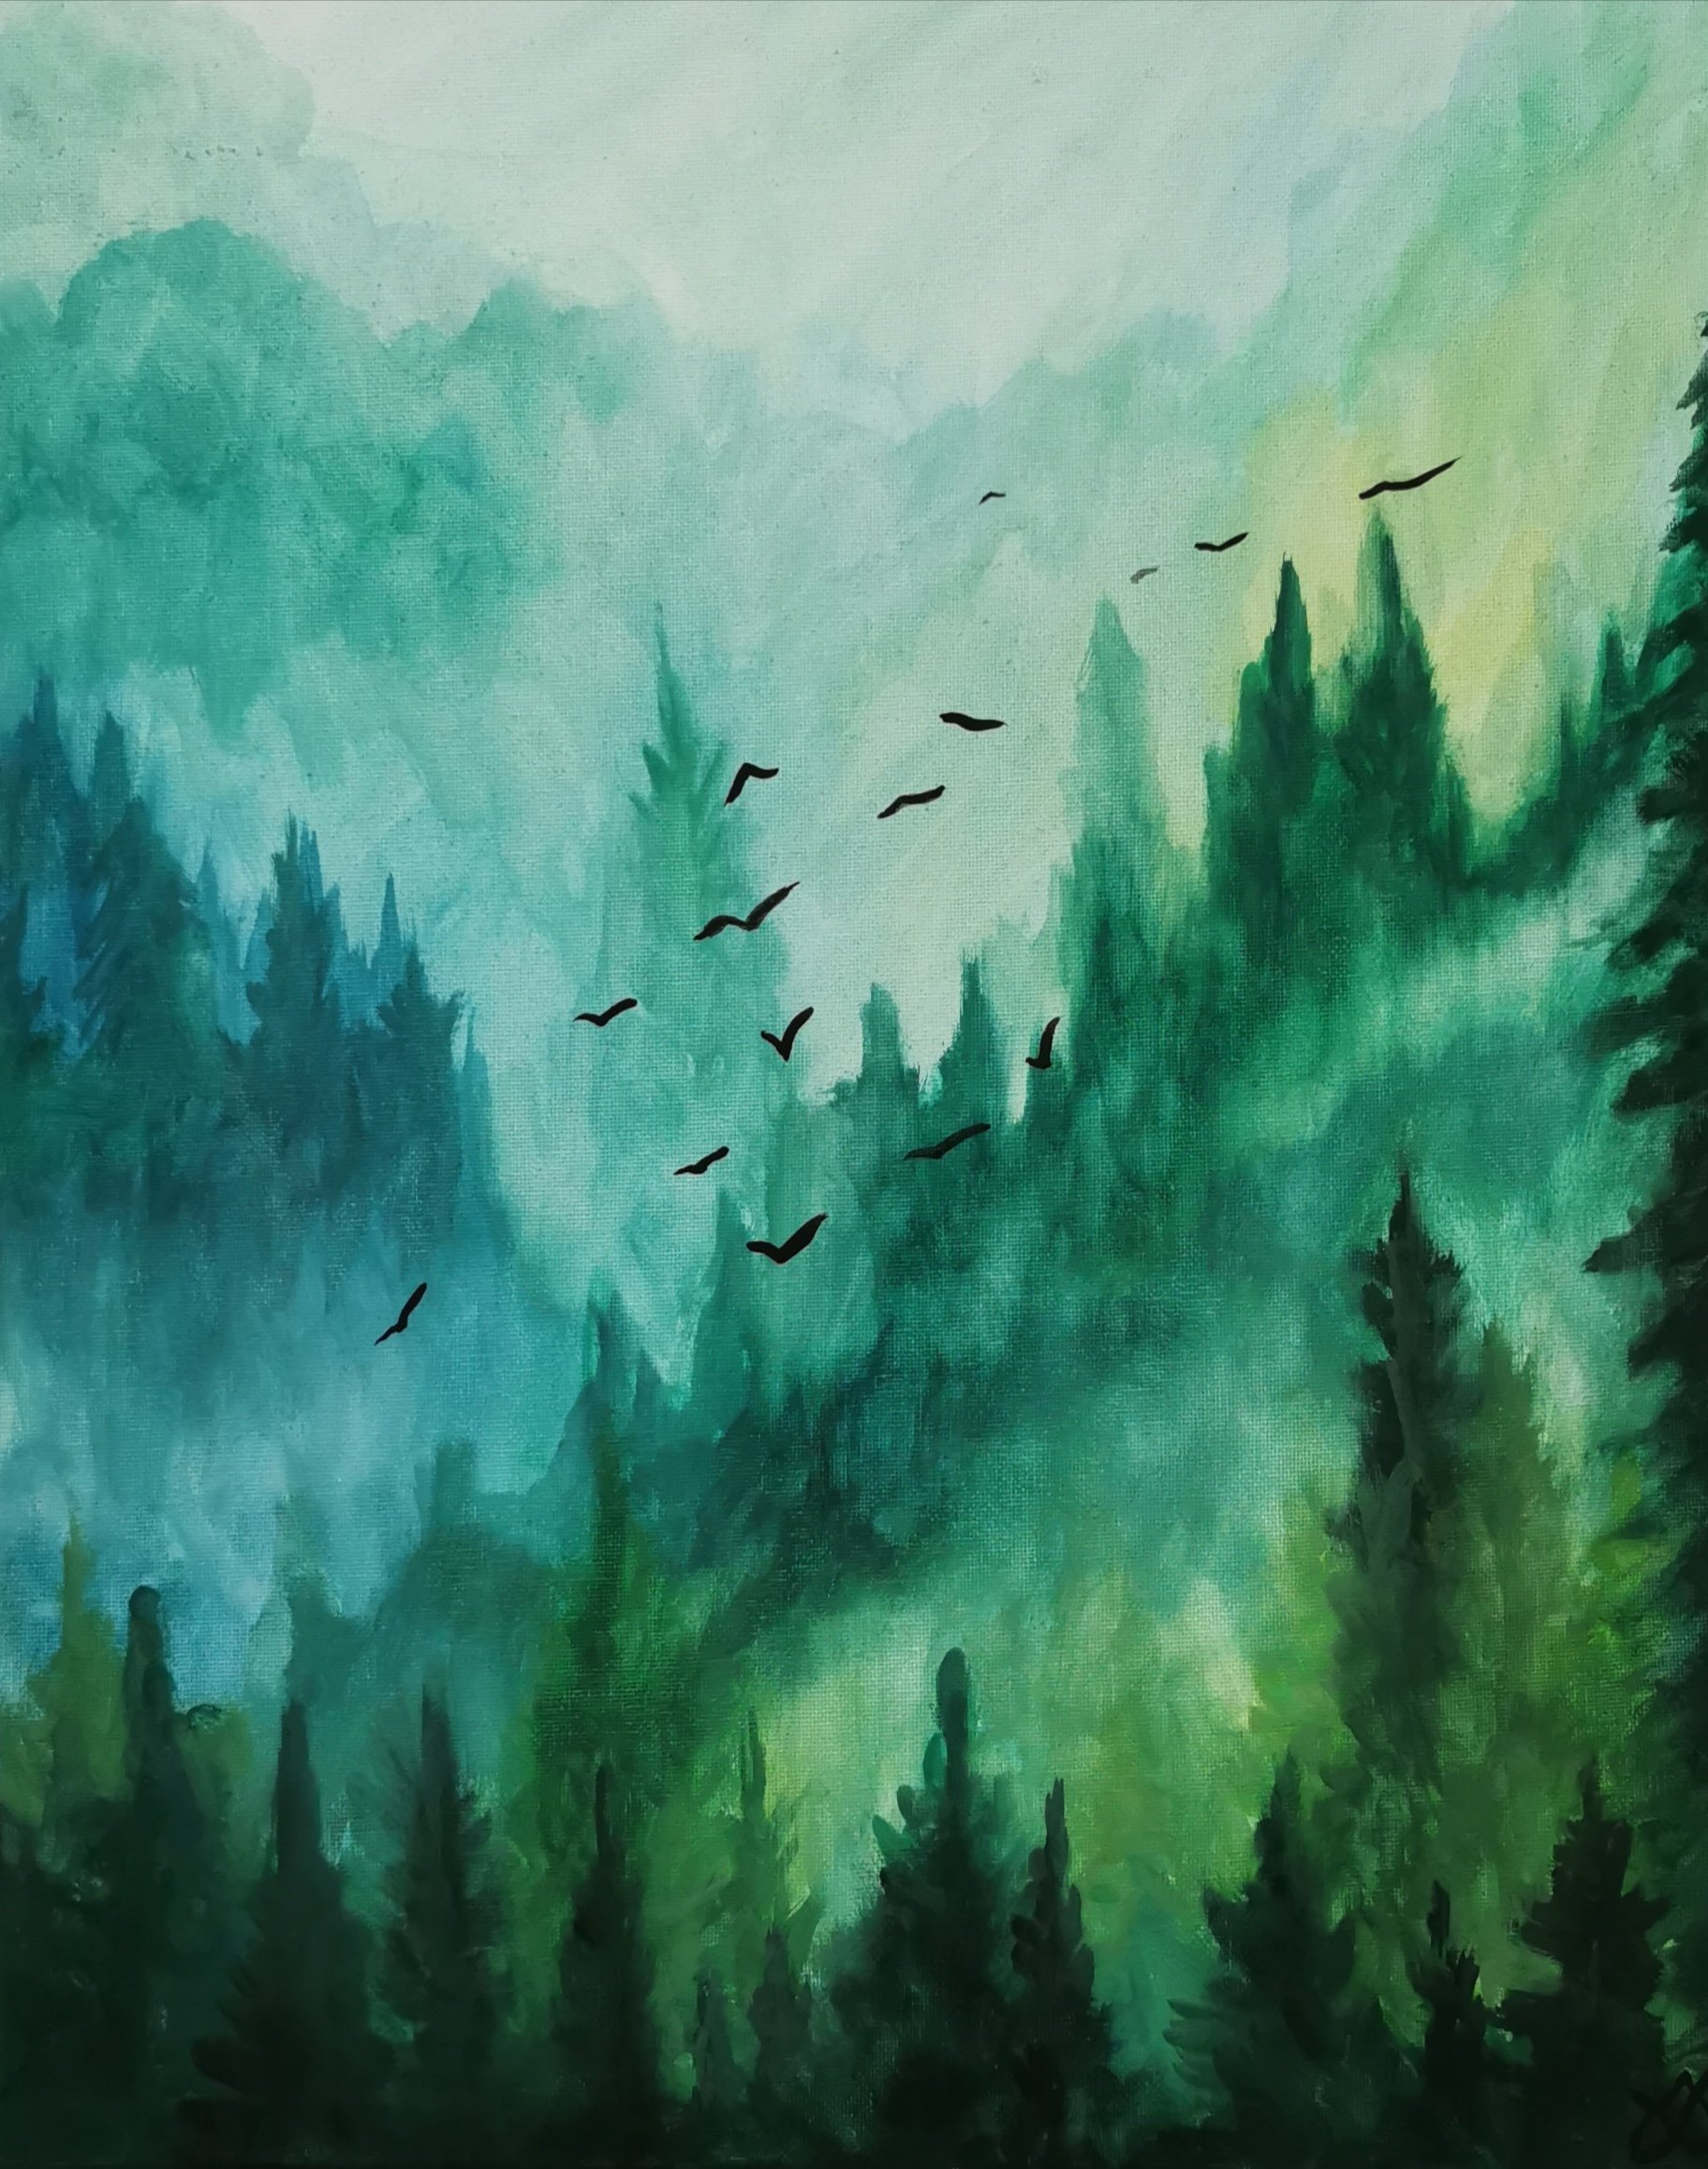 Mountain Mist - Watercolour - Sold Out